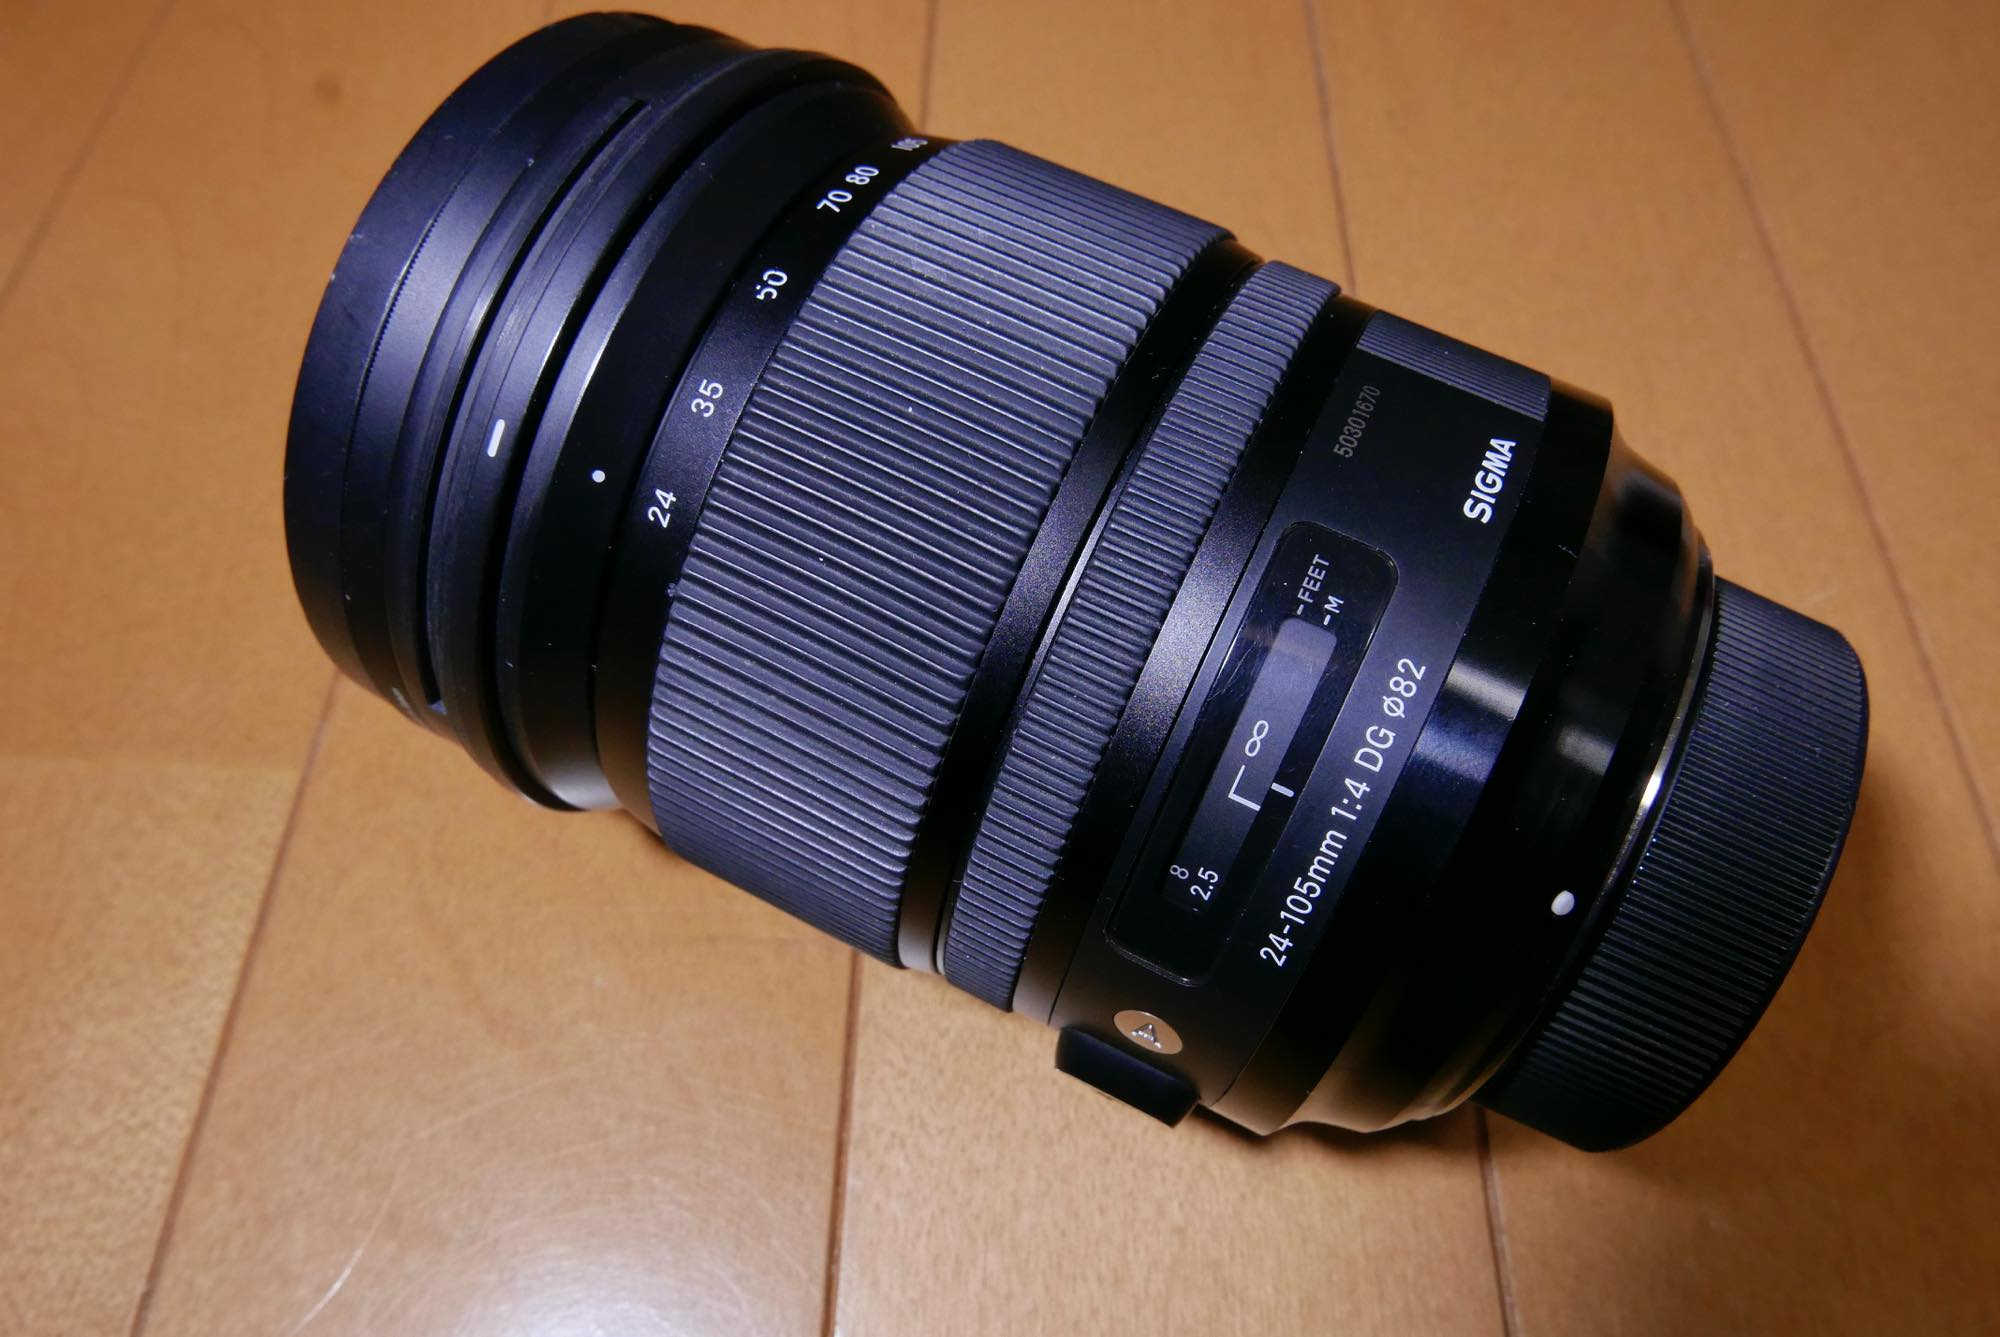 sigma 24-105mm f4 art